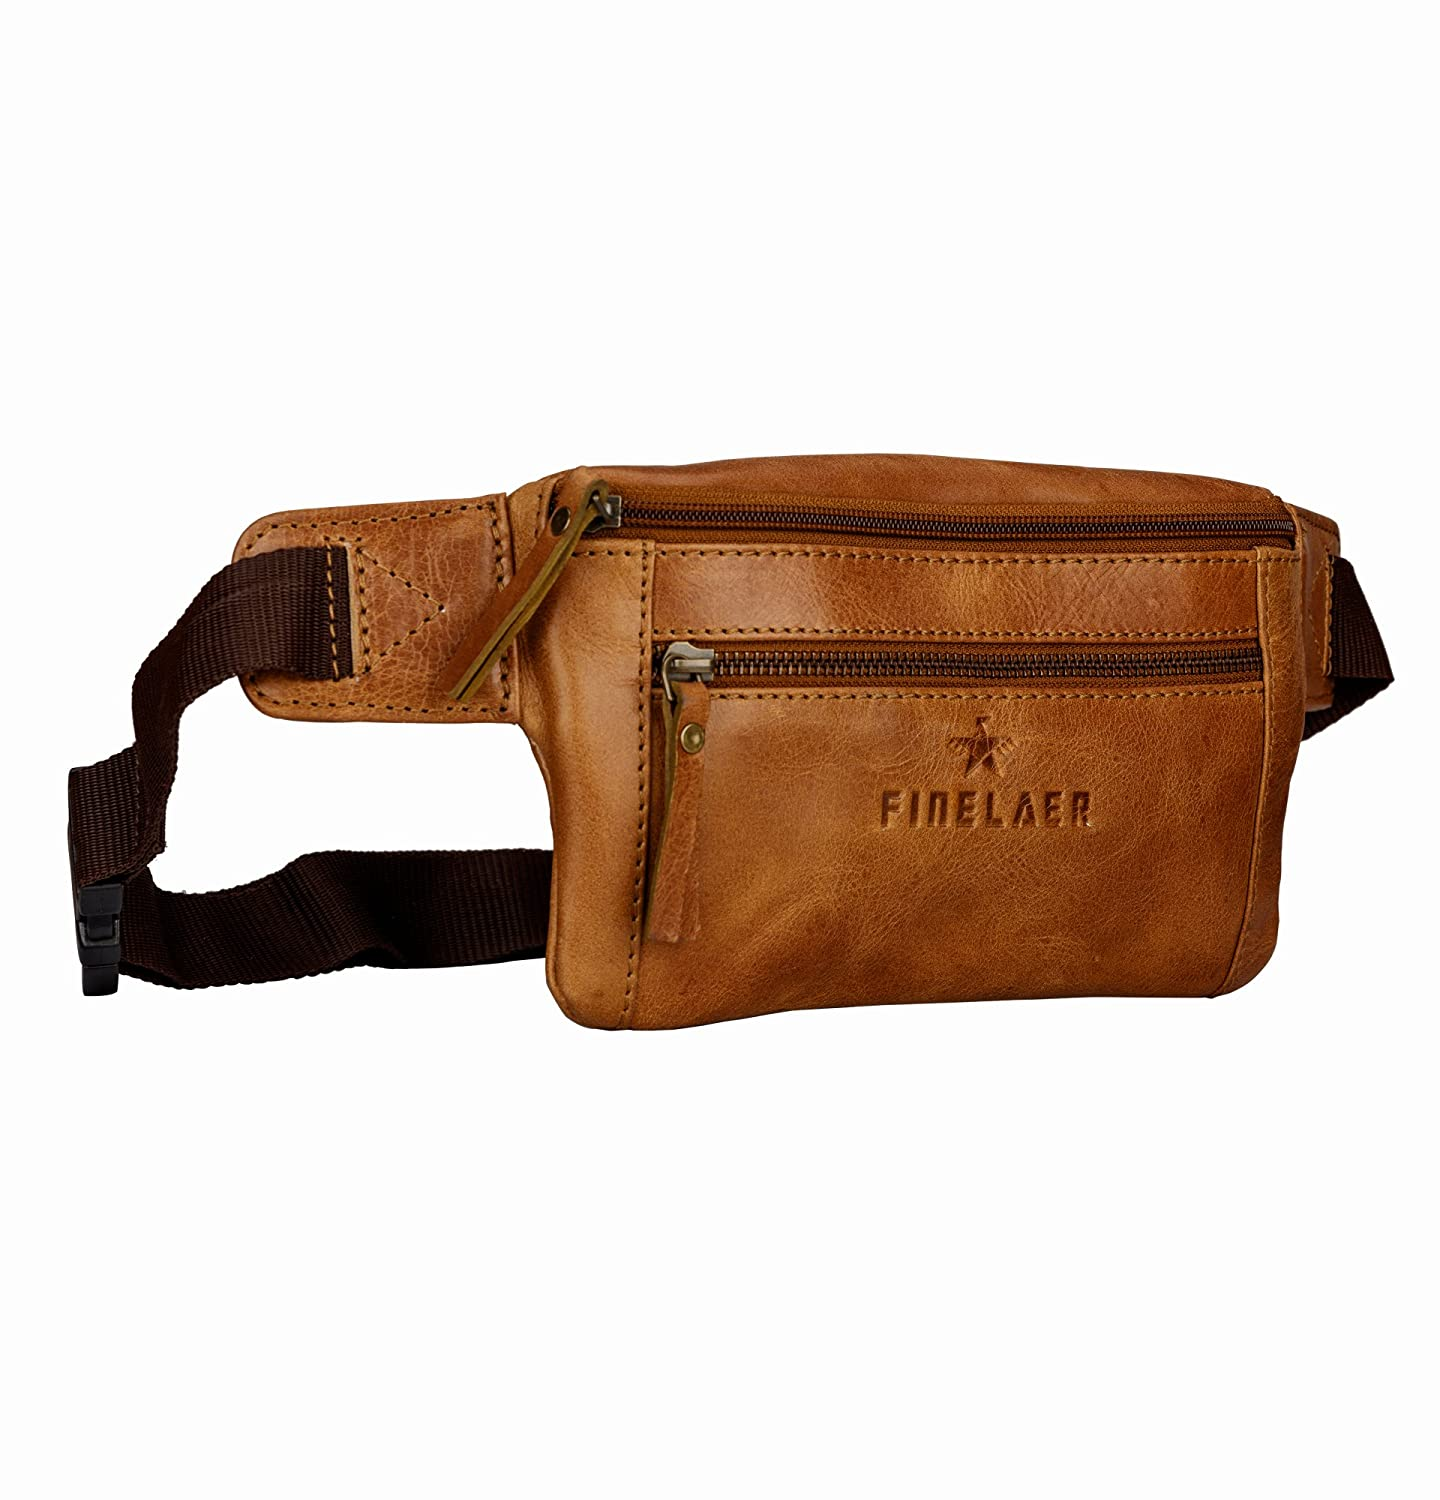 Finelaer Brown Leather Fanny Waist Travel Hiking Pack Bag